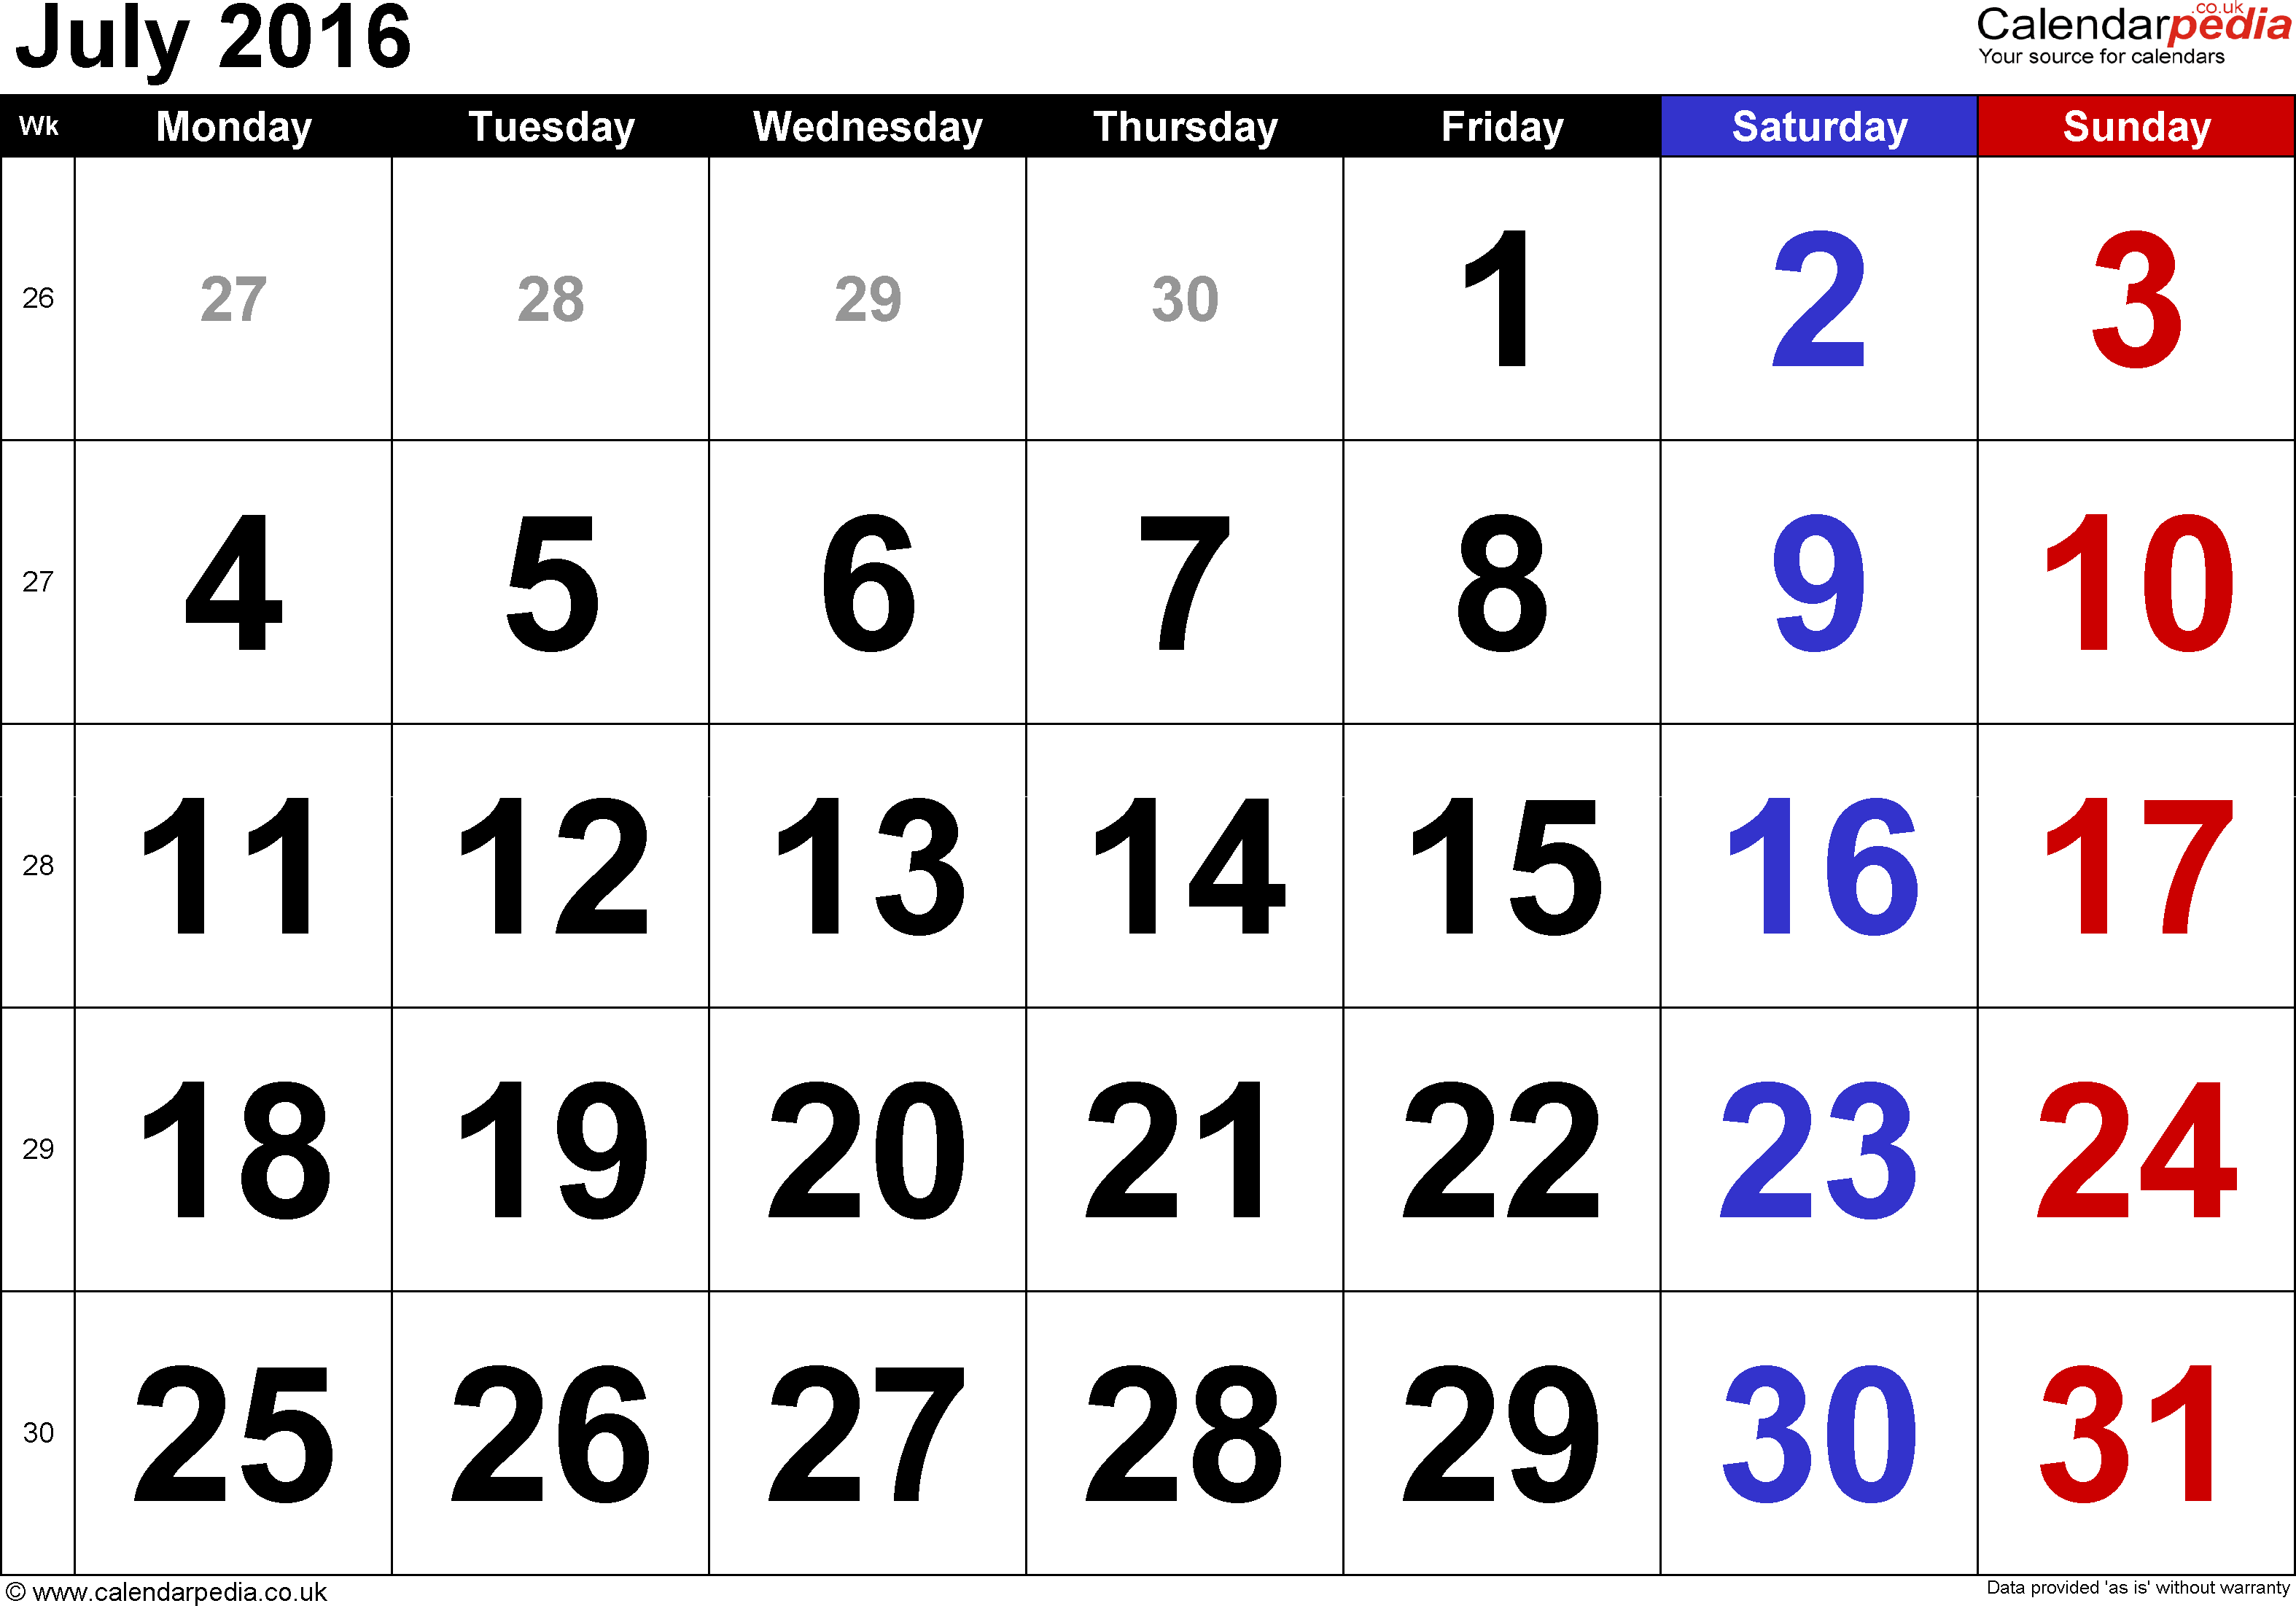 Calendar July 2016, landscape orientation, large numerals, 1 page, with UK bank holidays and week numbers